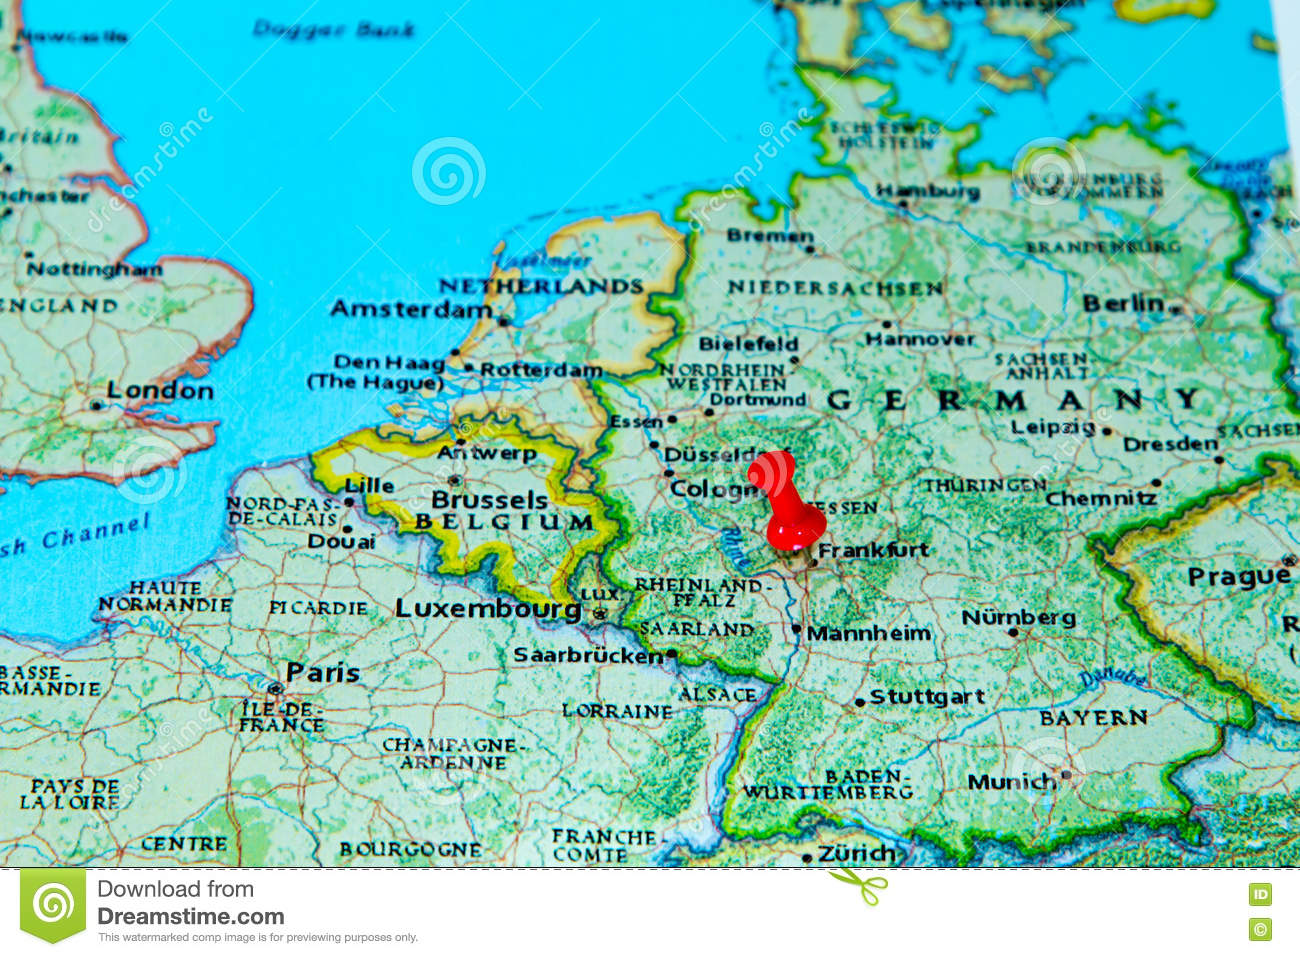 Frankfurt Germany Pinned On A Map Of Europe Stock Image Image Of